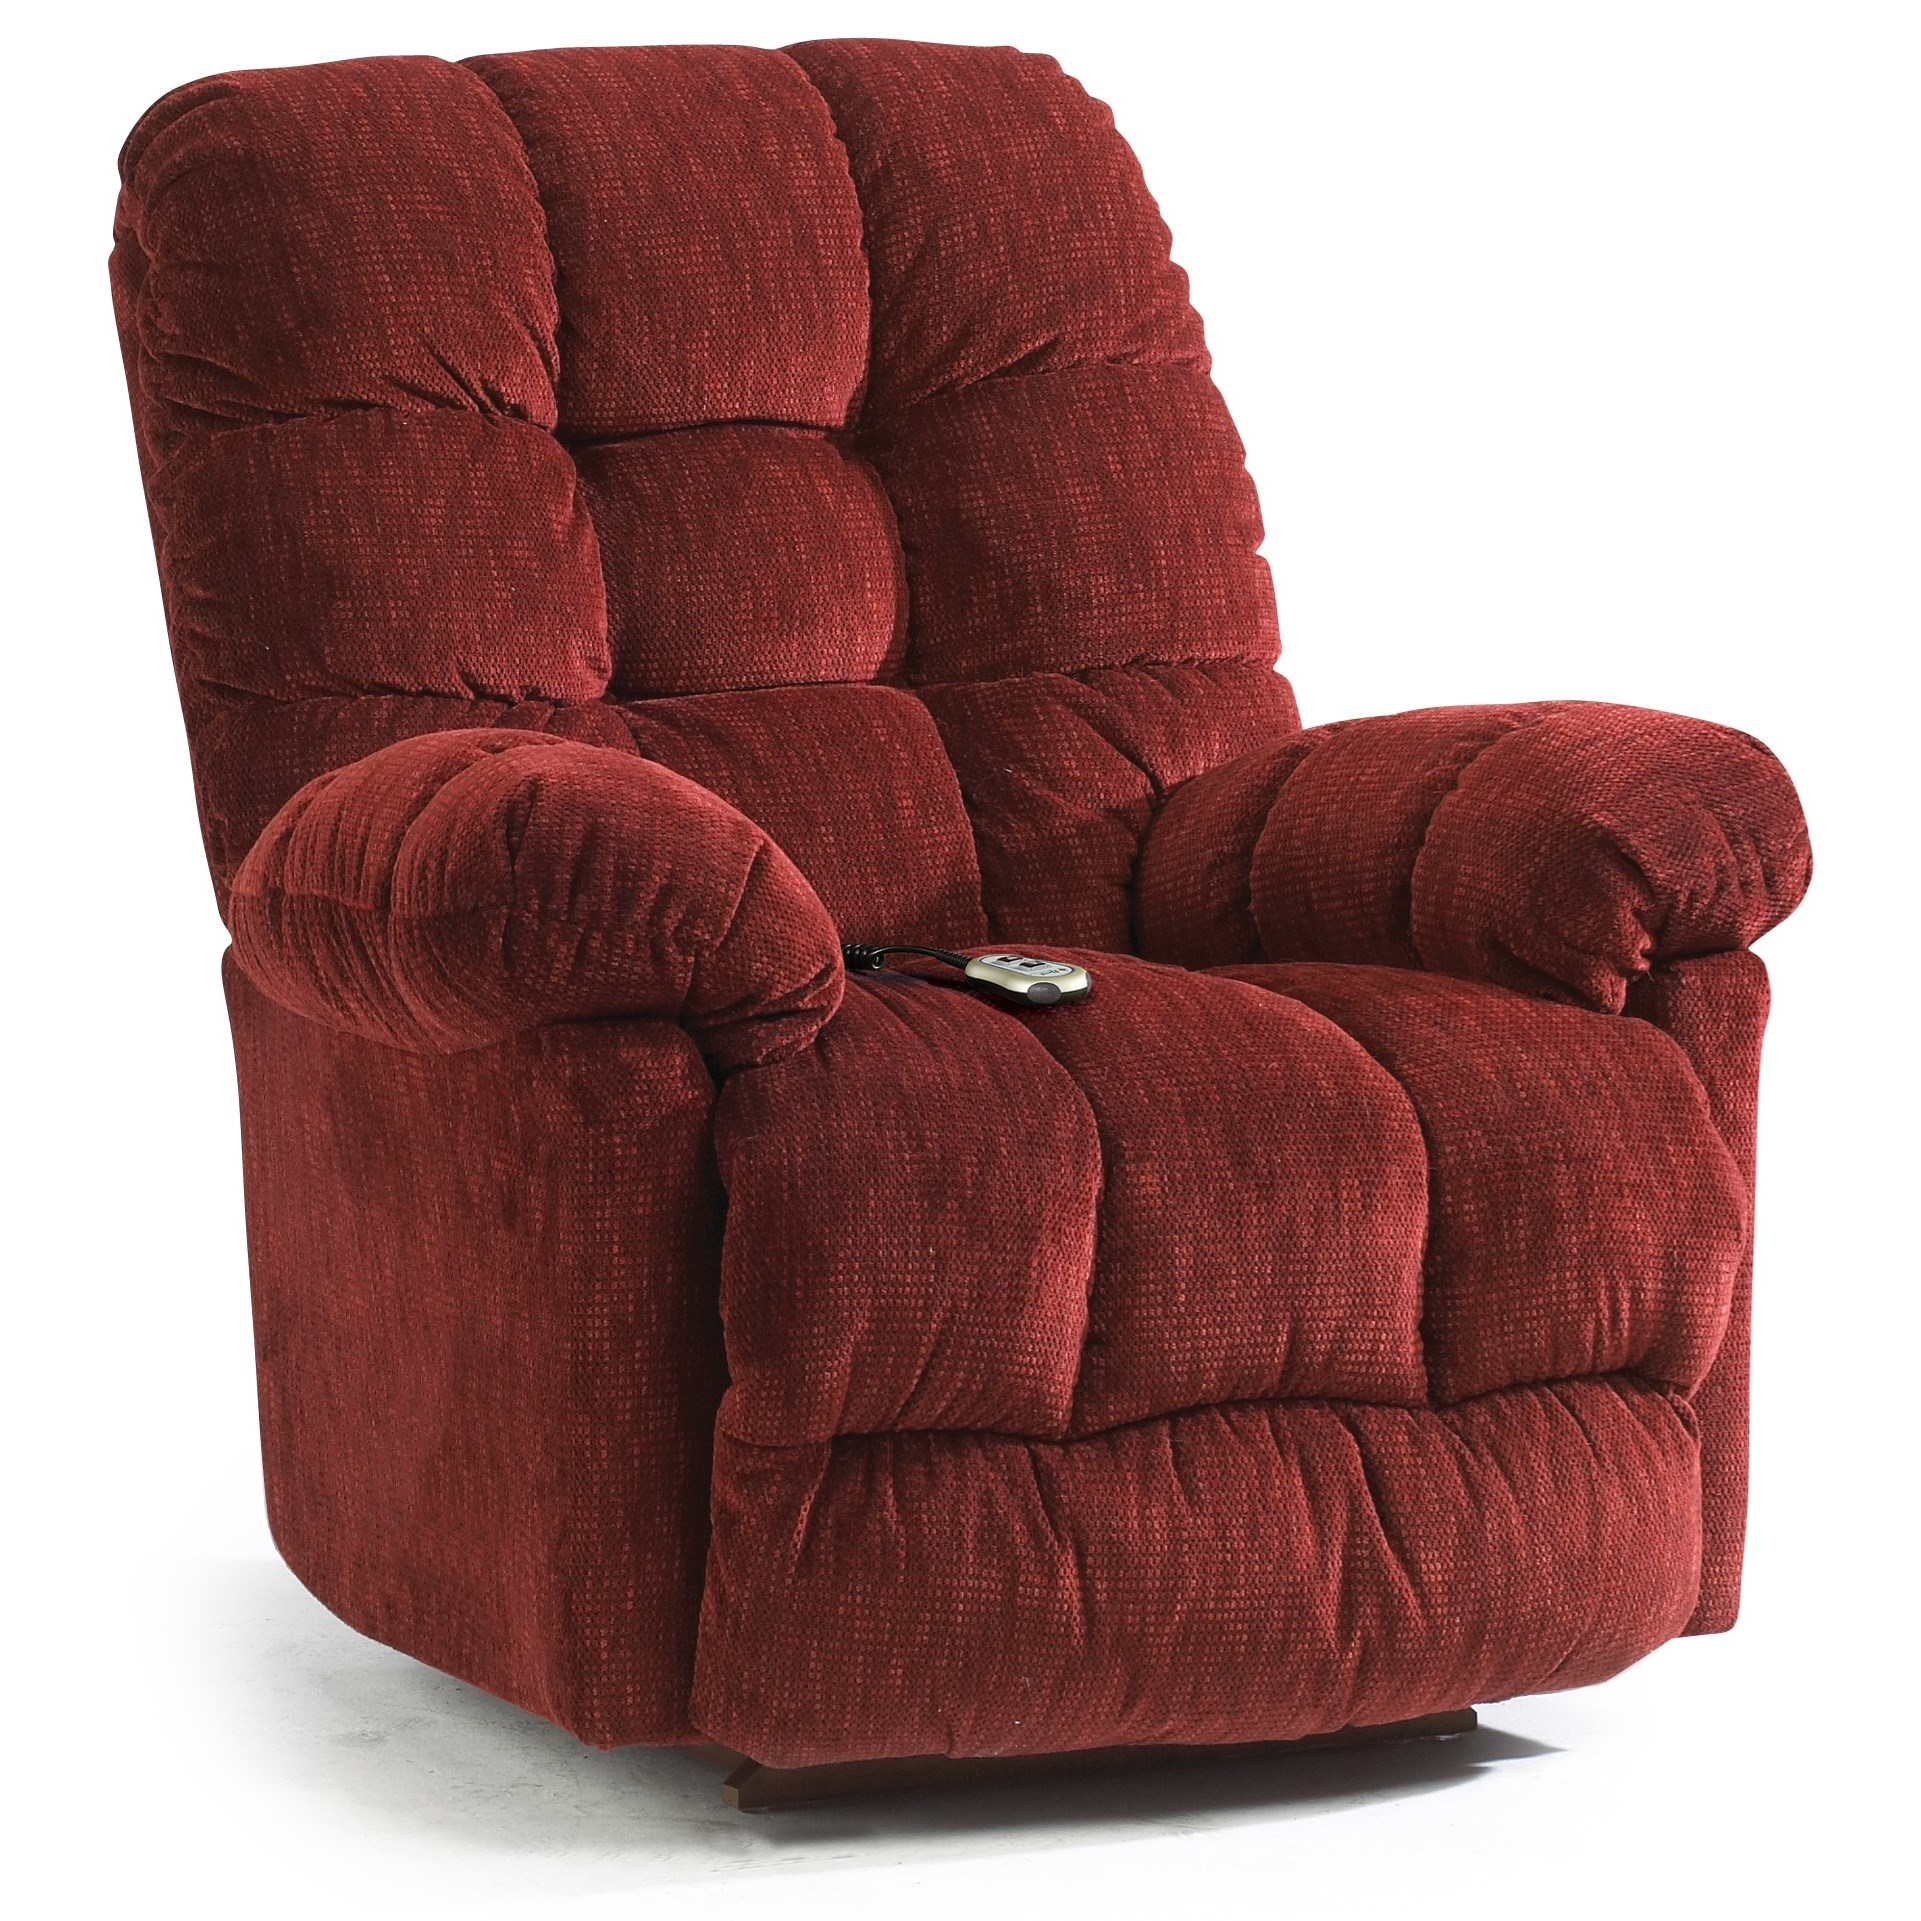 Medium Recliners Brosmer Power Wallhugger Recliner by Best Home Furnishings at Turk Furniture